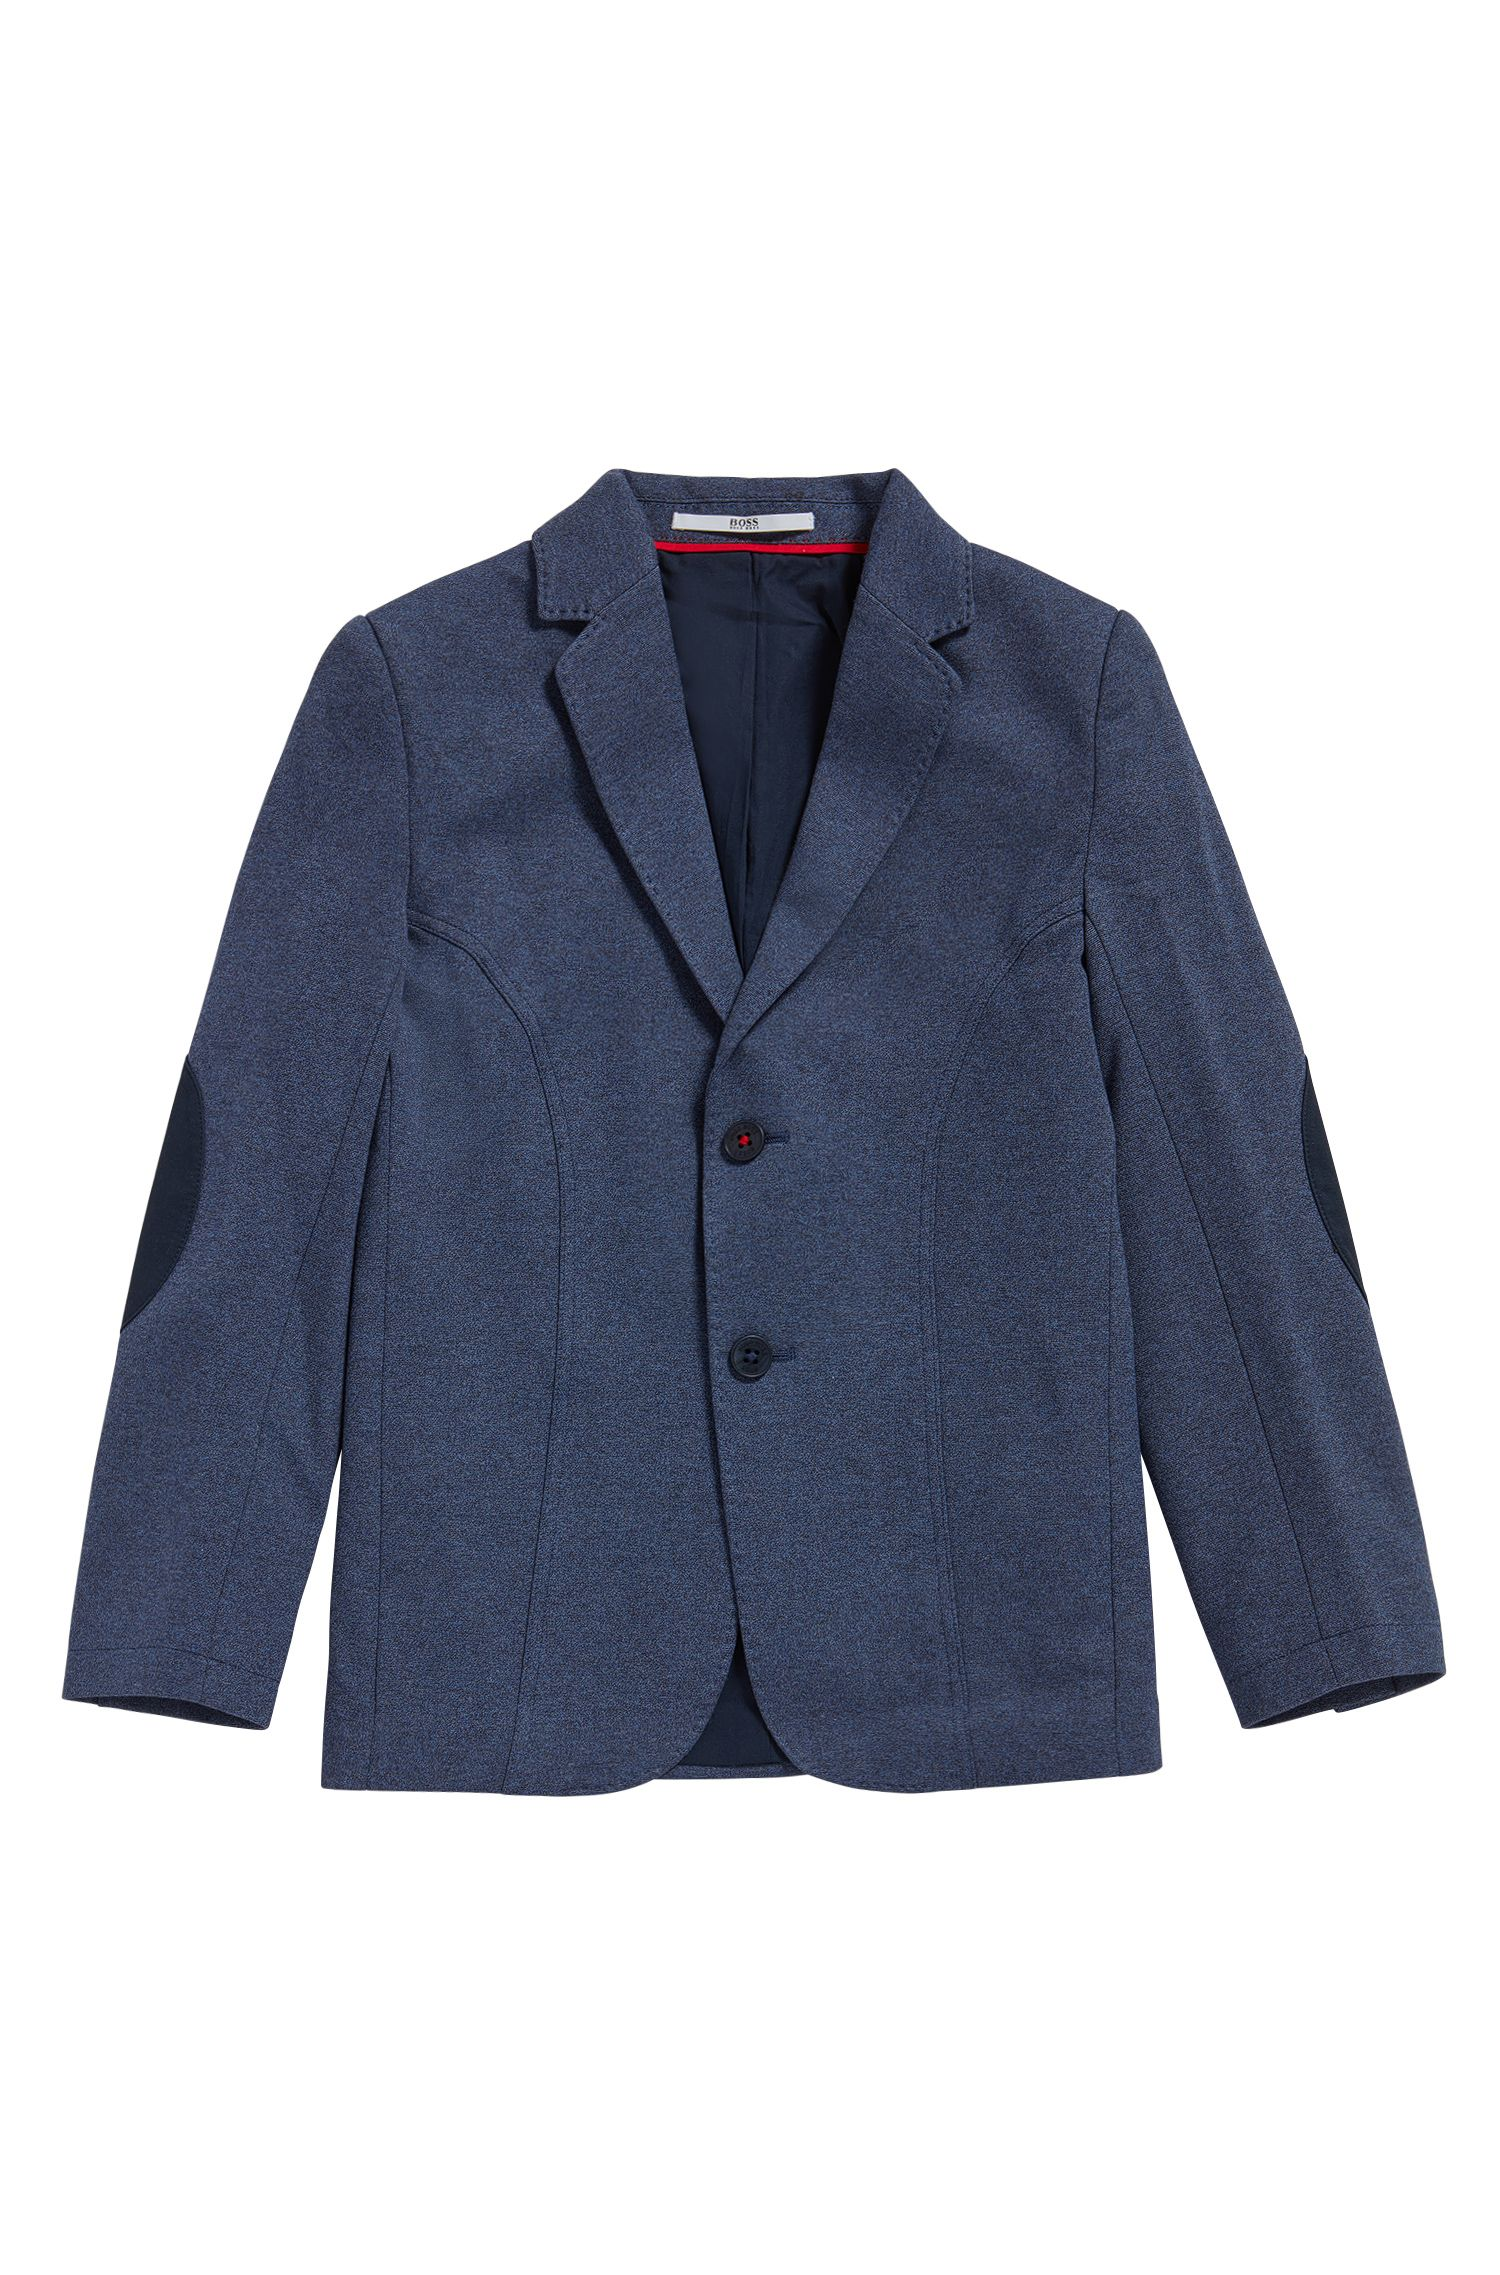 Kids' regular-fit jacket in a cotton blend